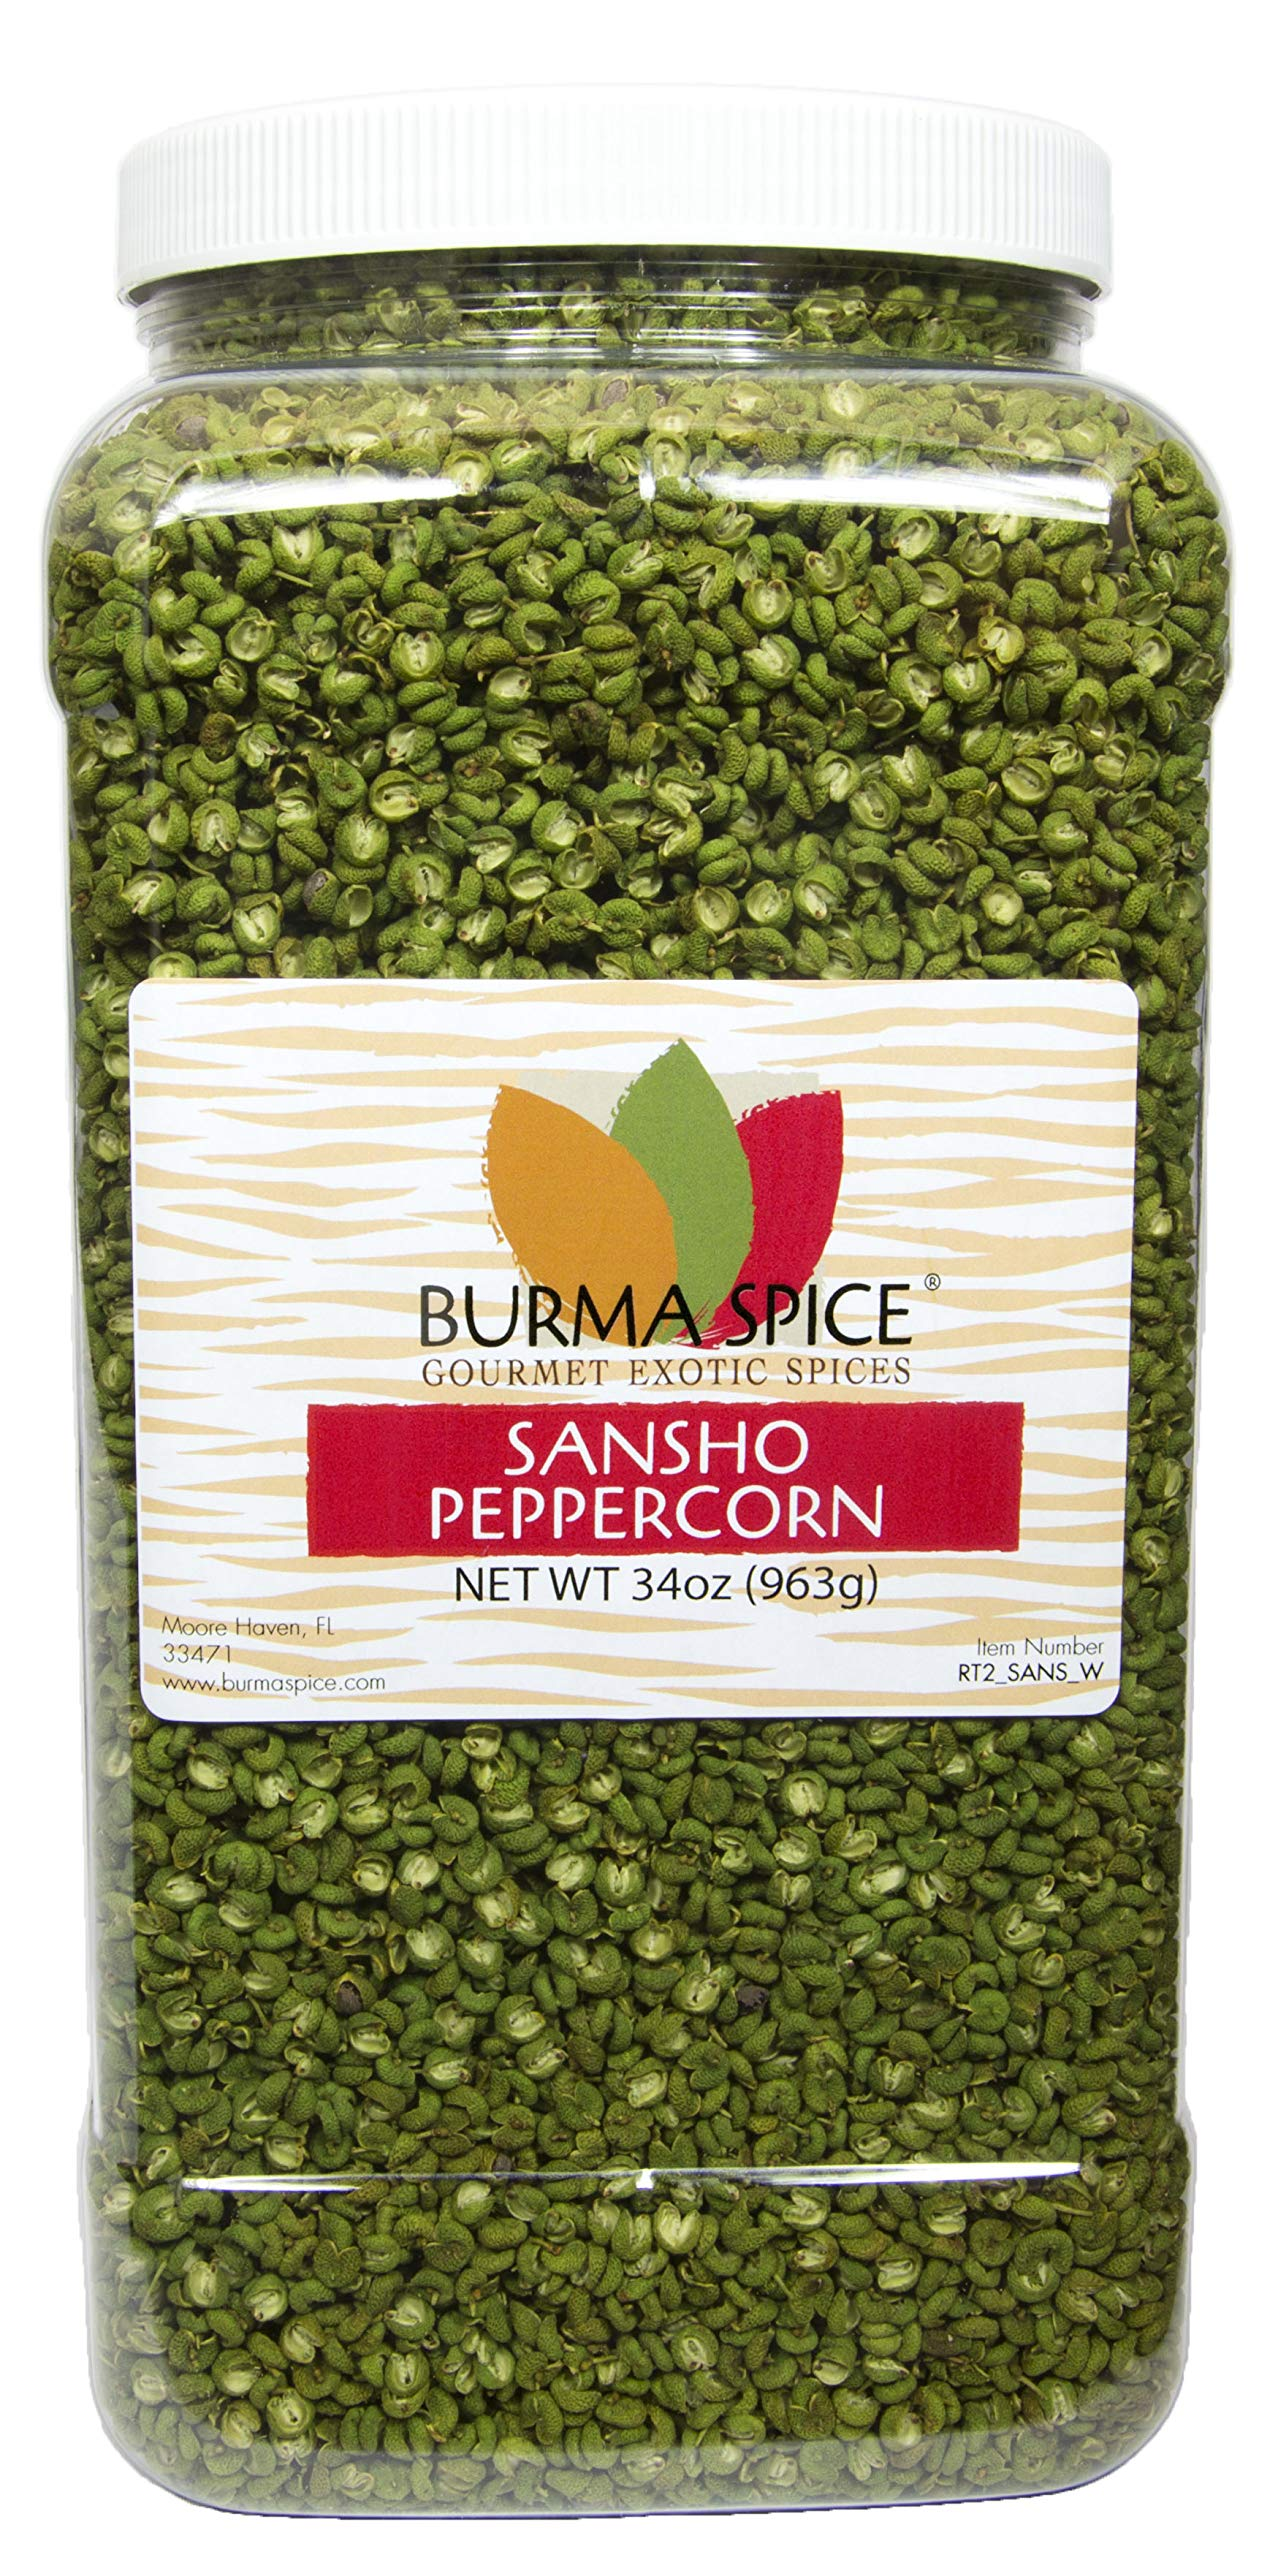 Sansho : Peppercorn : Japanese Prickly Ash, Asian, Chinese Cuisine : Citrus Herb Zing (34oz.)